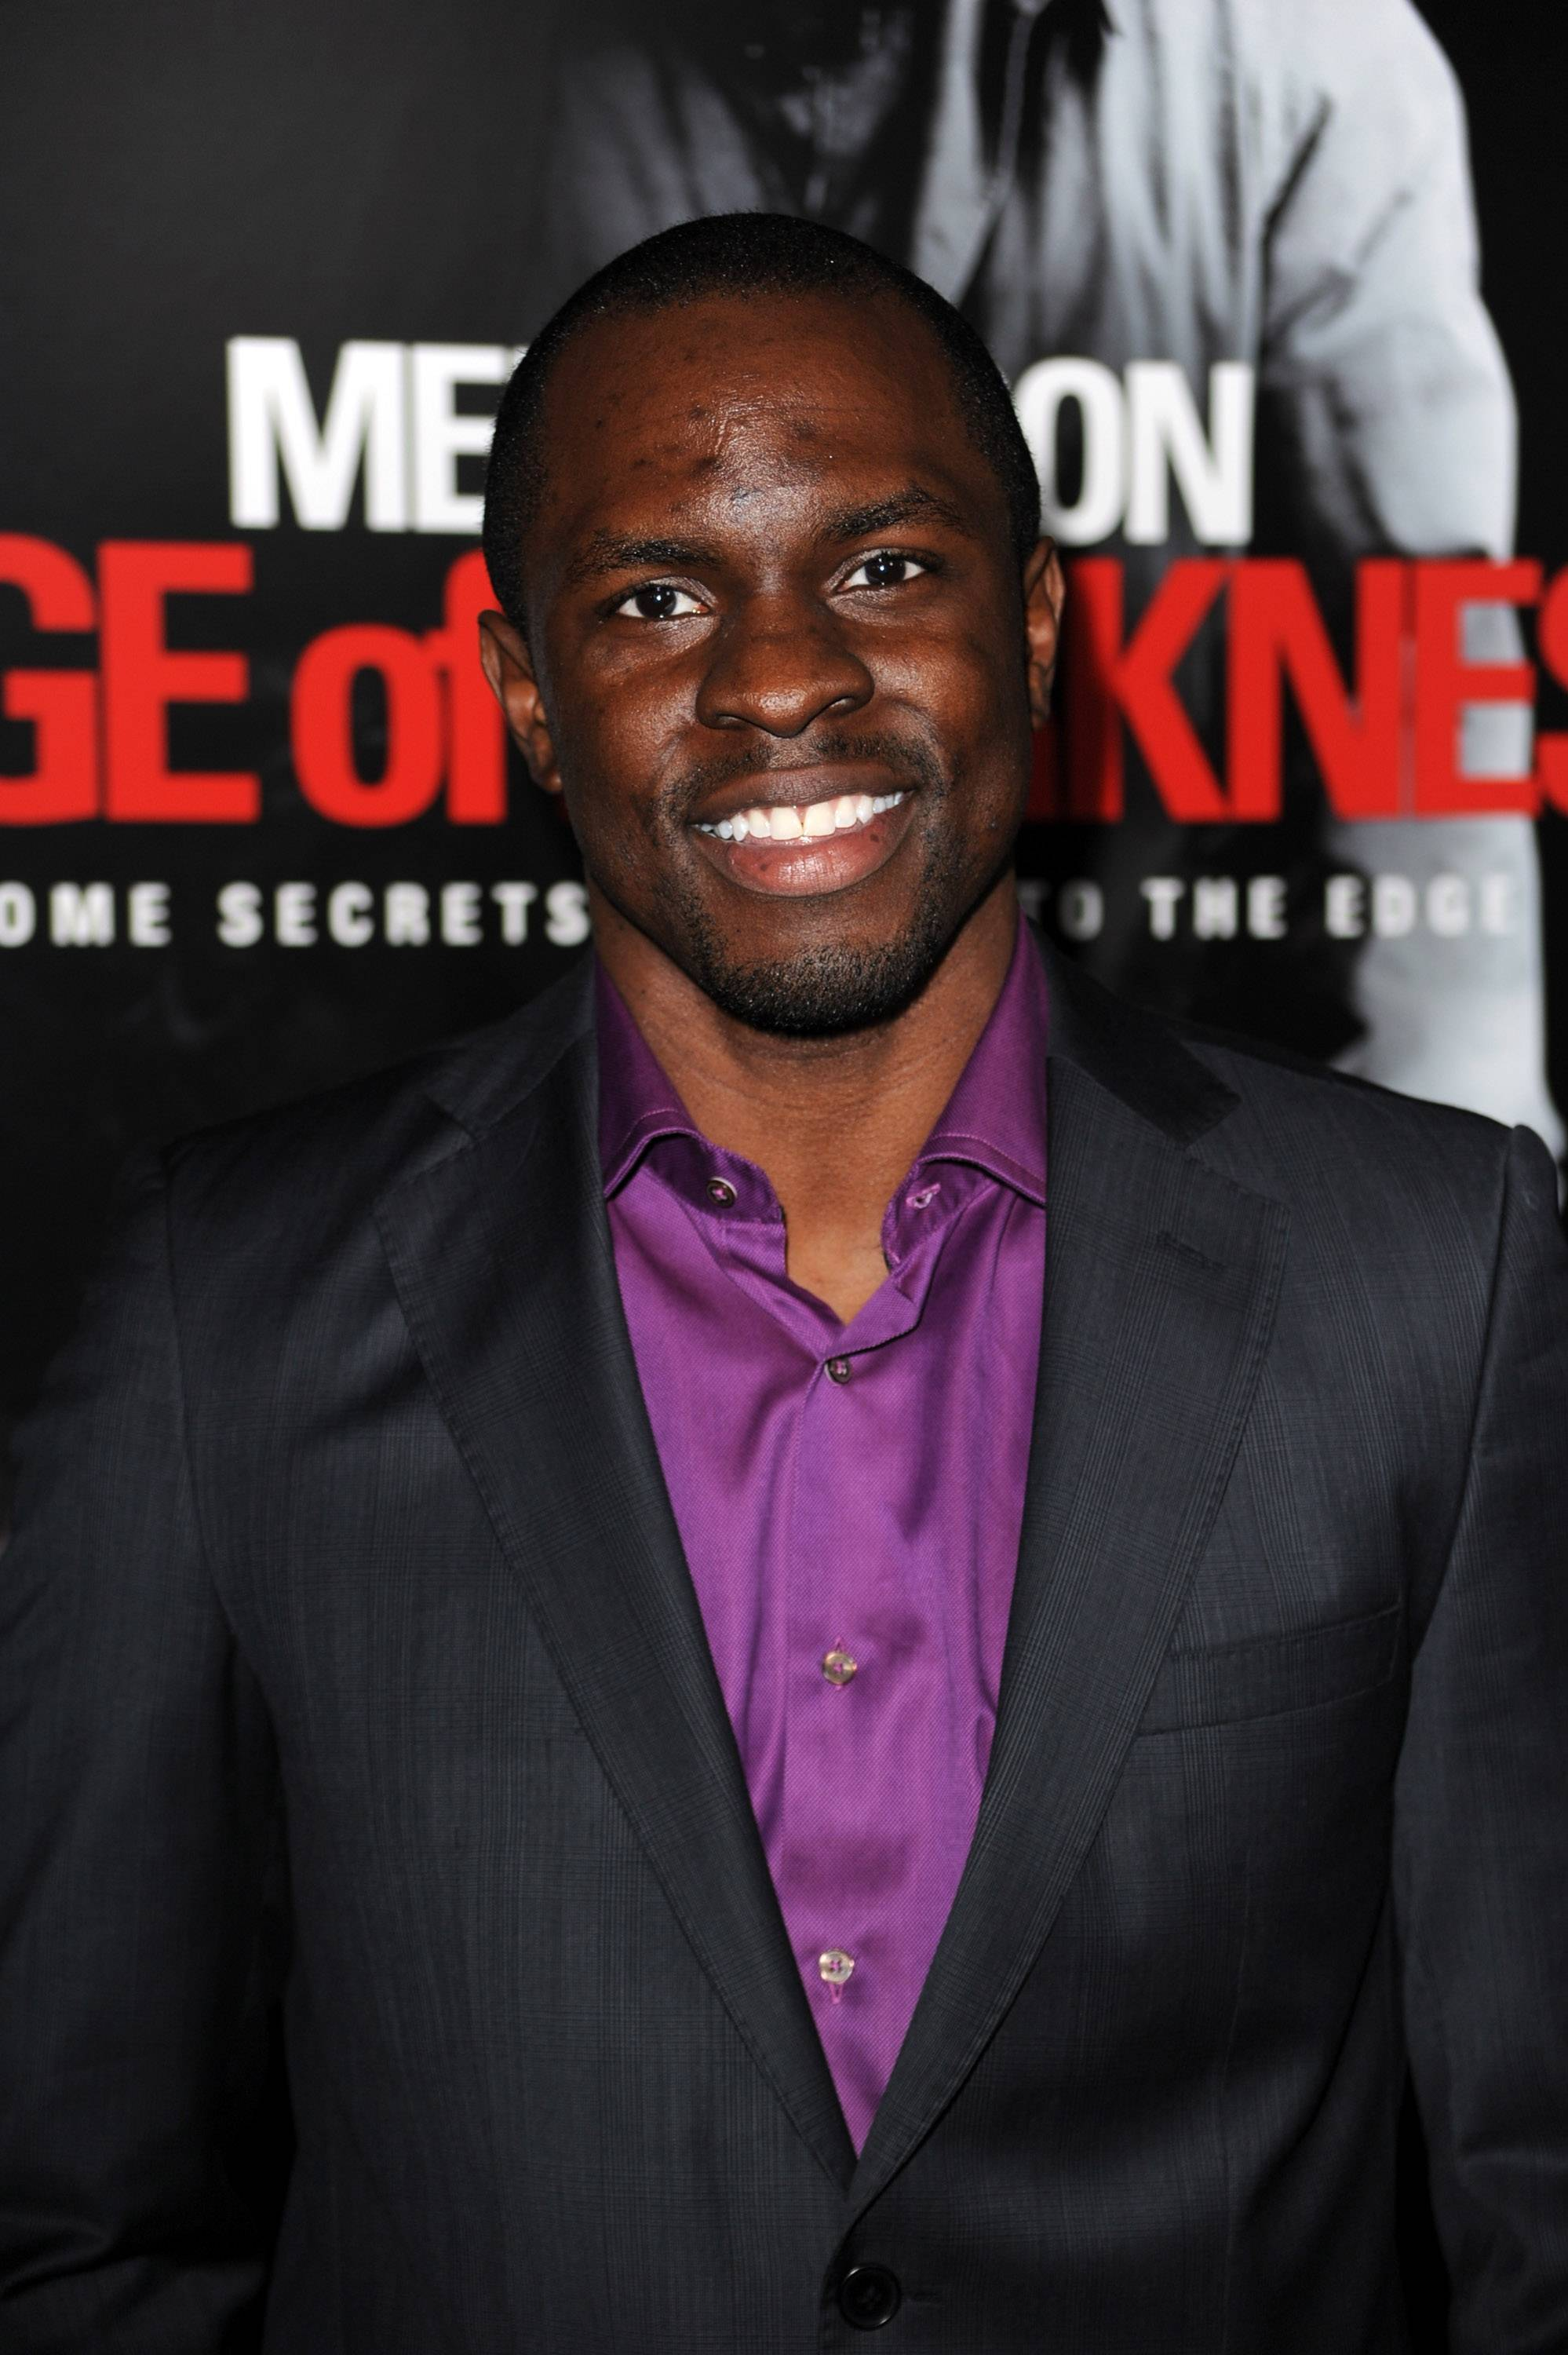 Edge of Darkness - Akinnagbe had a small role in the Mel Gibson action-thriller Edge of Darkness, in which he portrayed a detective associated with Gibson's character.(Photo by Frazer Harrison/Getty Images)